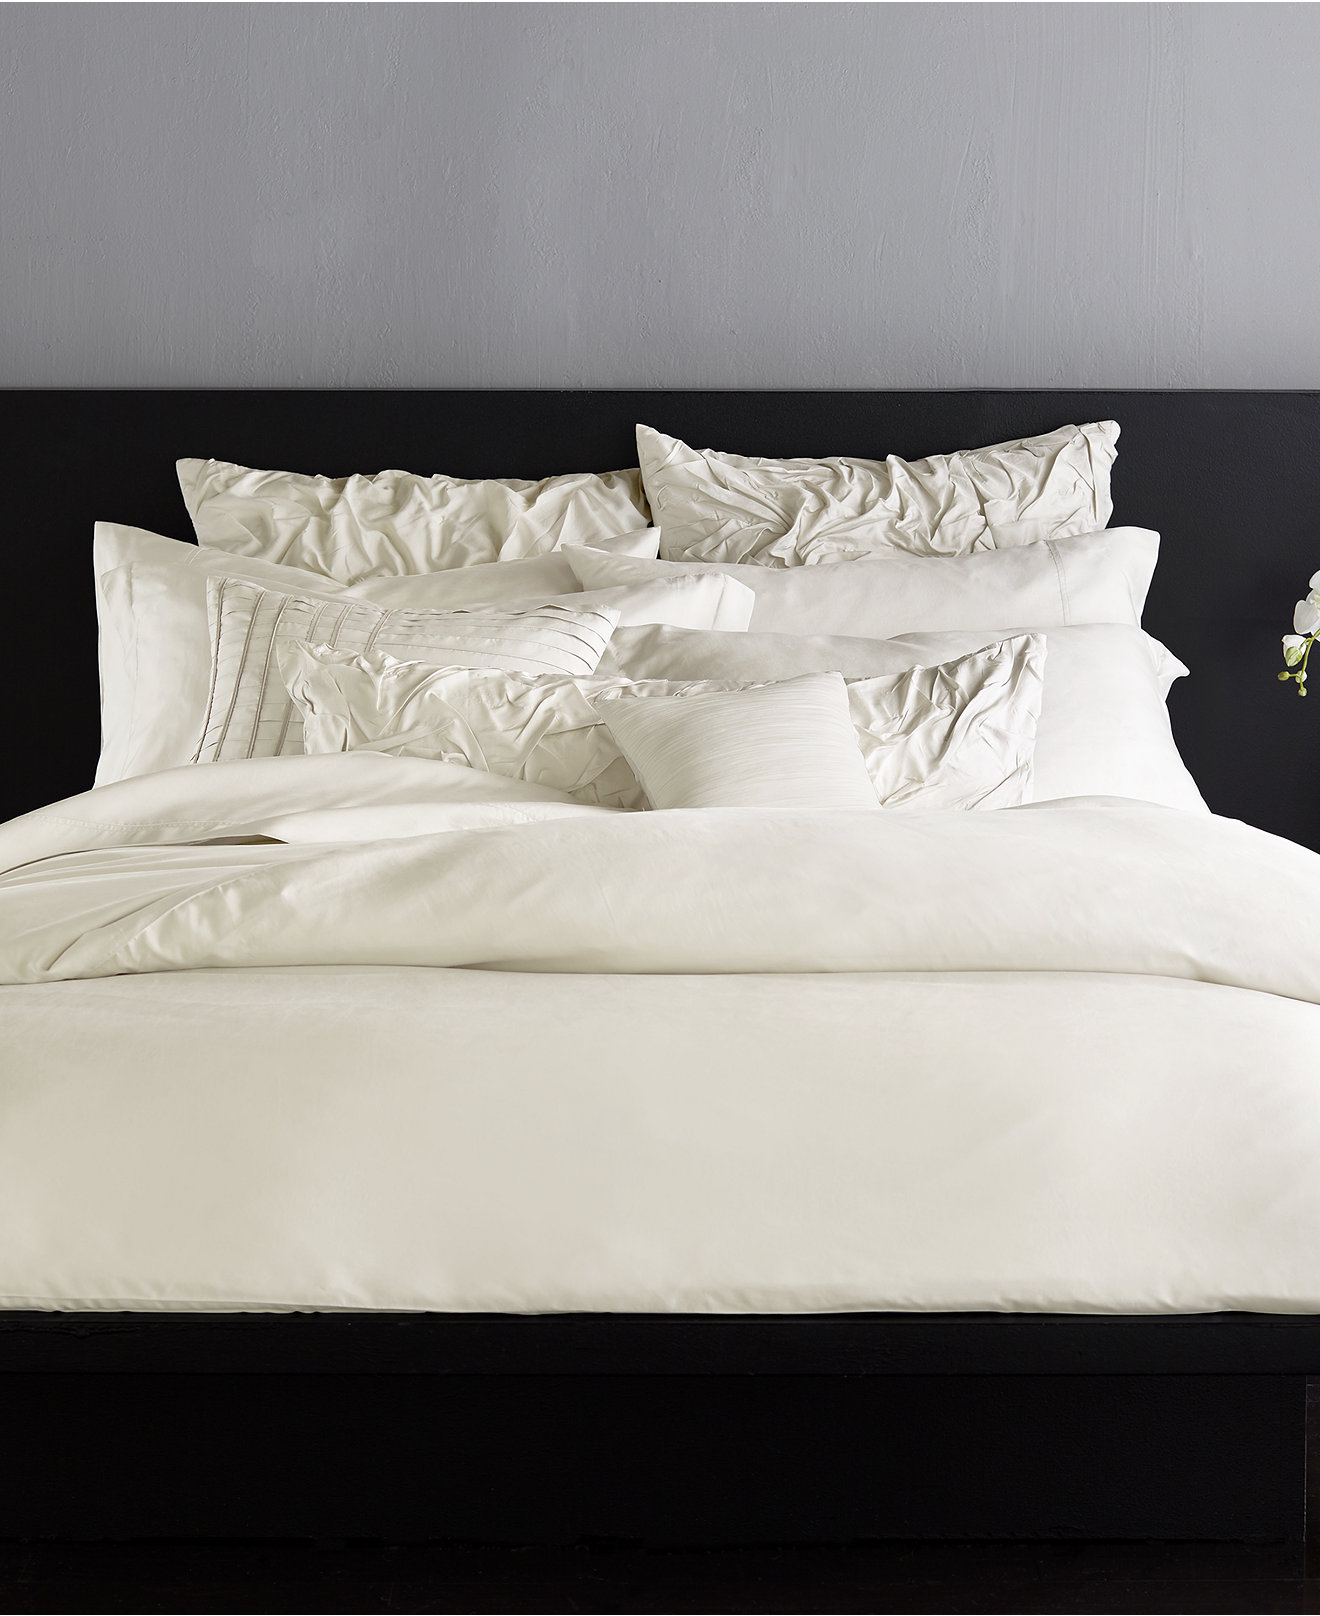 Engaging donna karan bedding with Cushion and pillows also beautiful duvet cover and sidetable and luxury wall paint color